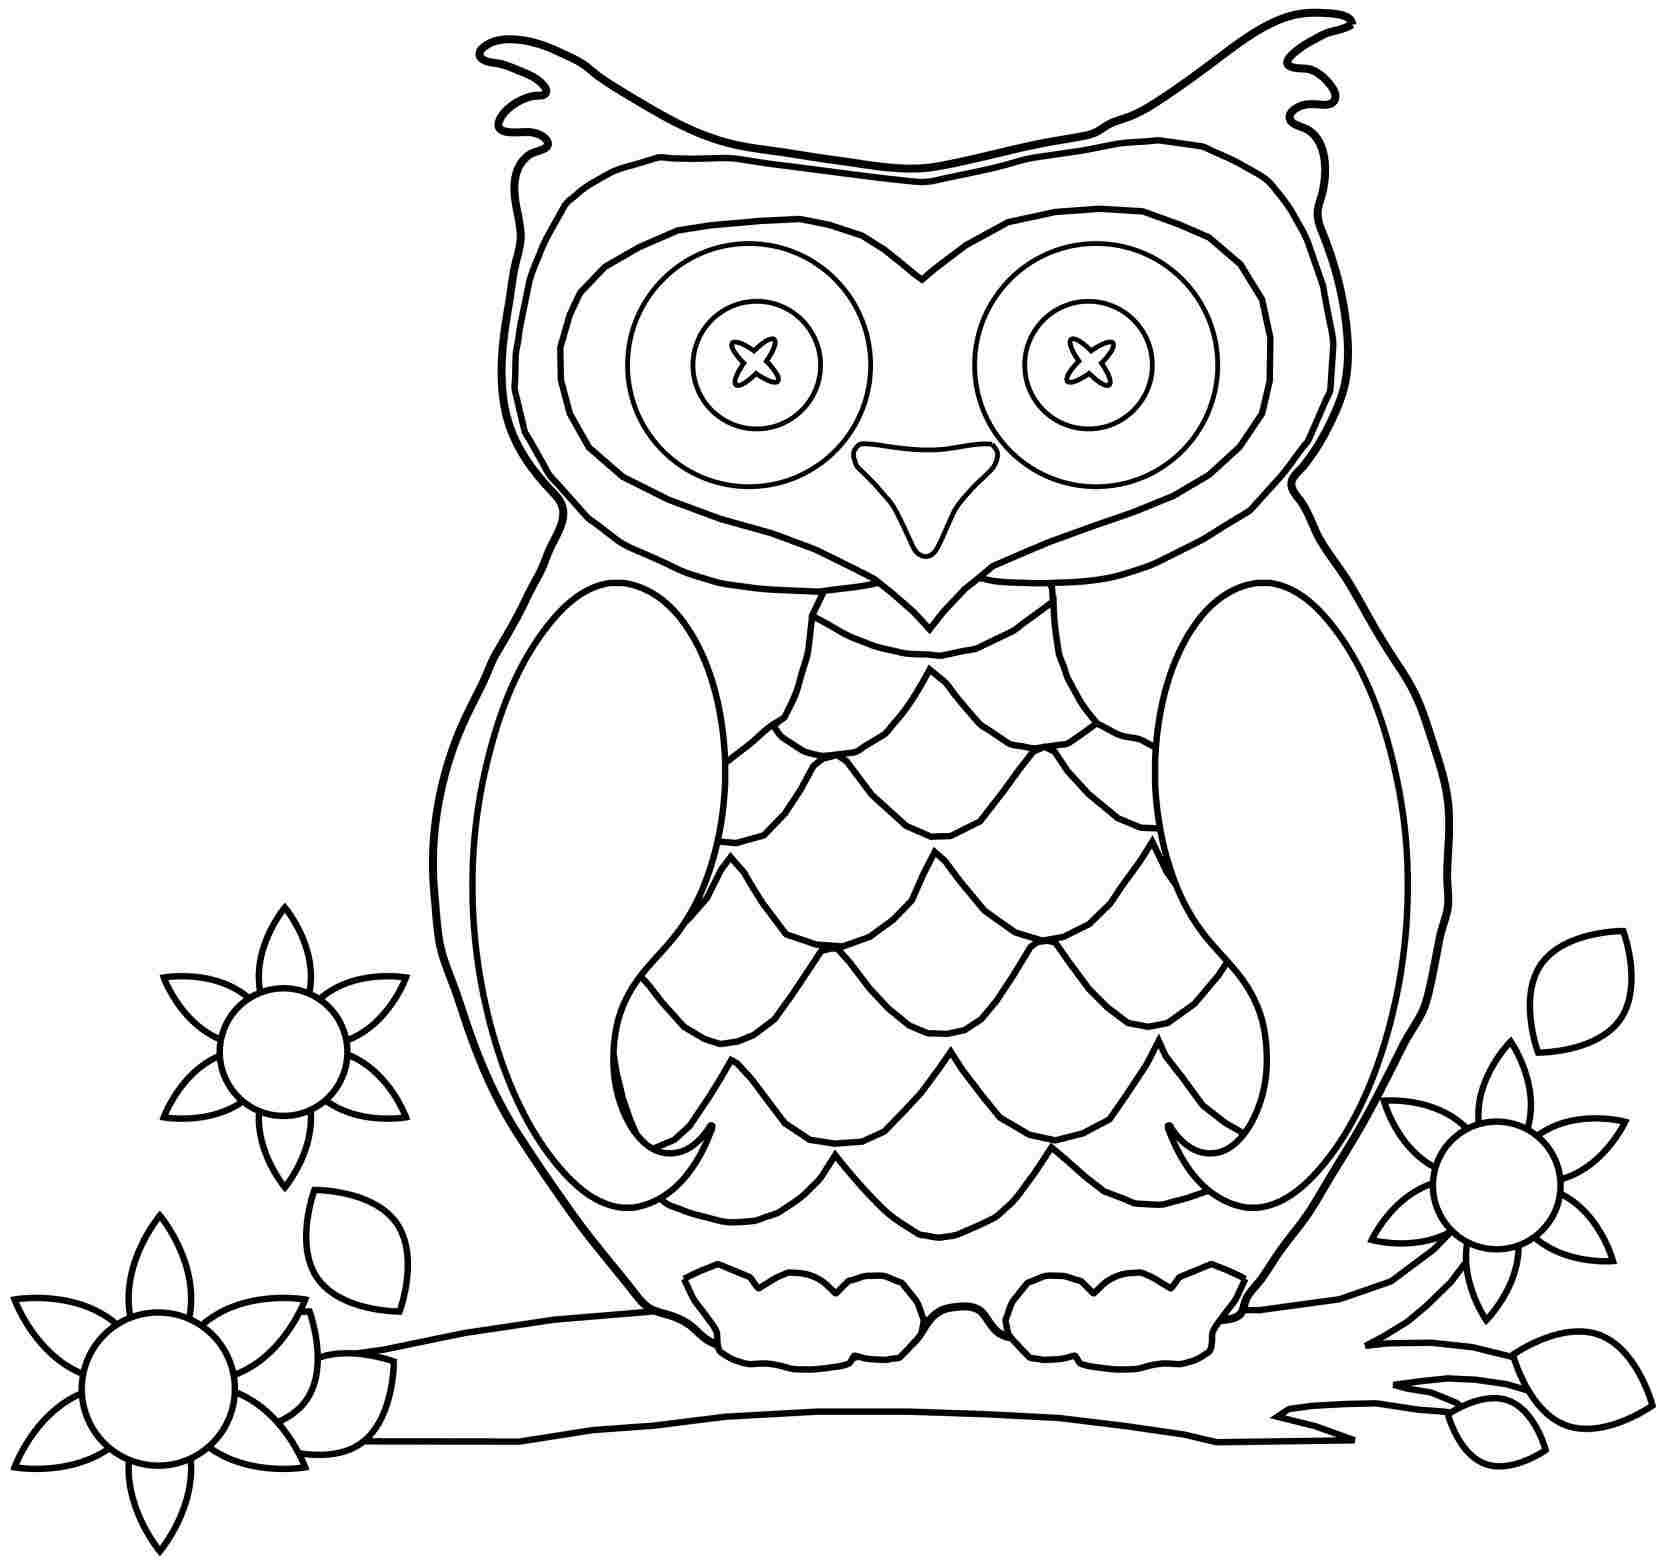 Printable Owl Picture | Owl Printable Coloring Pages | common core ...